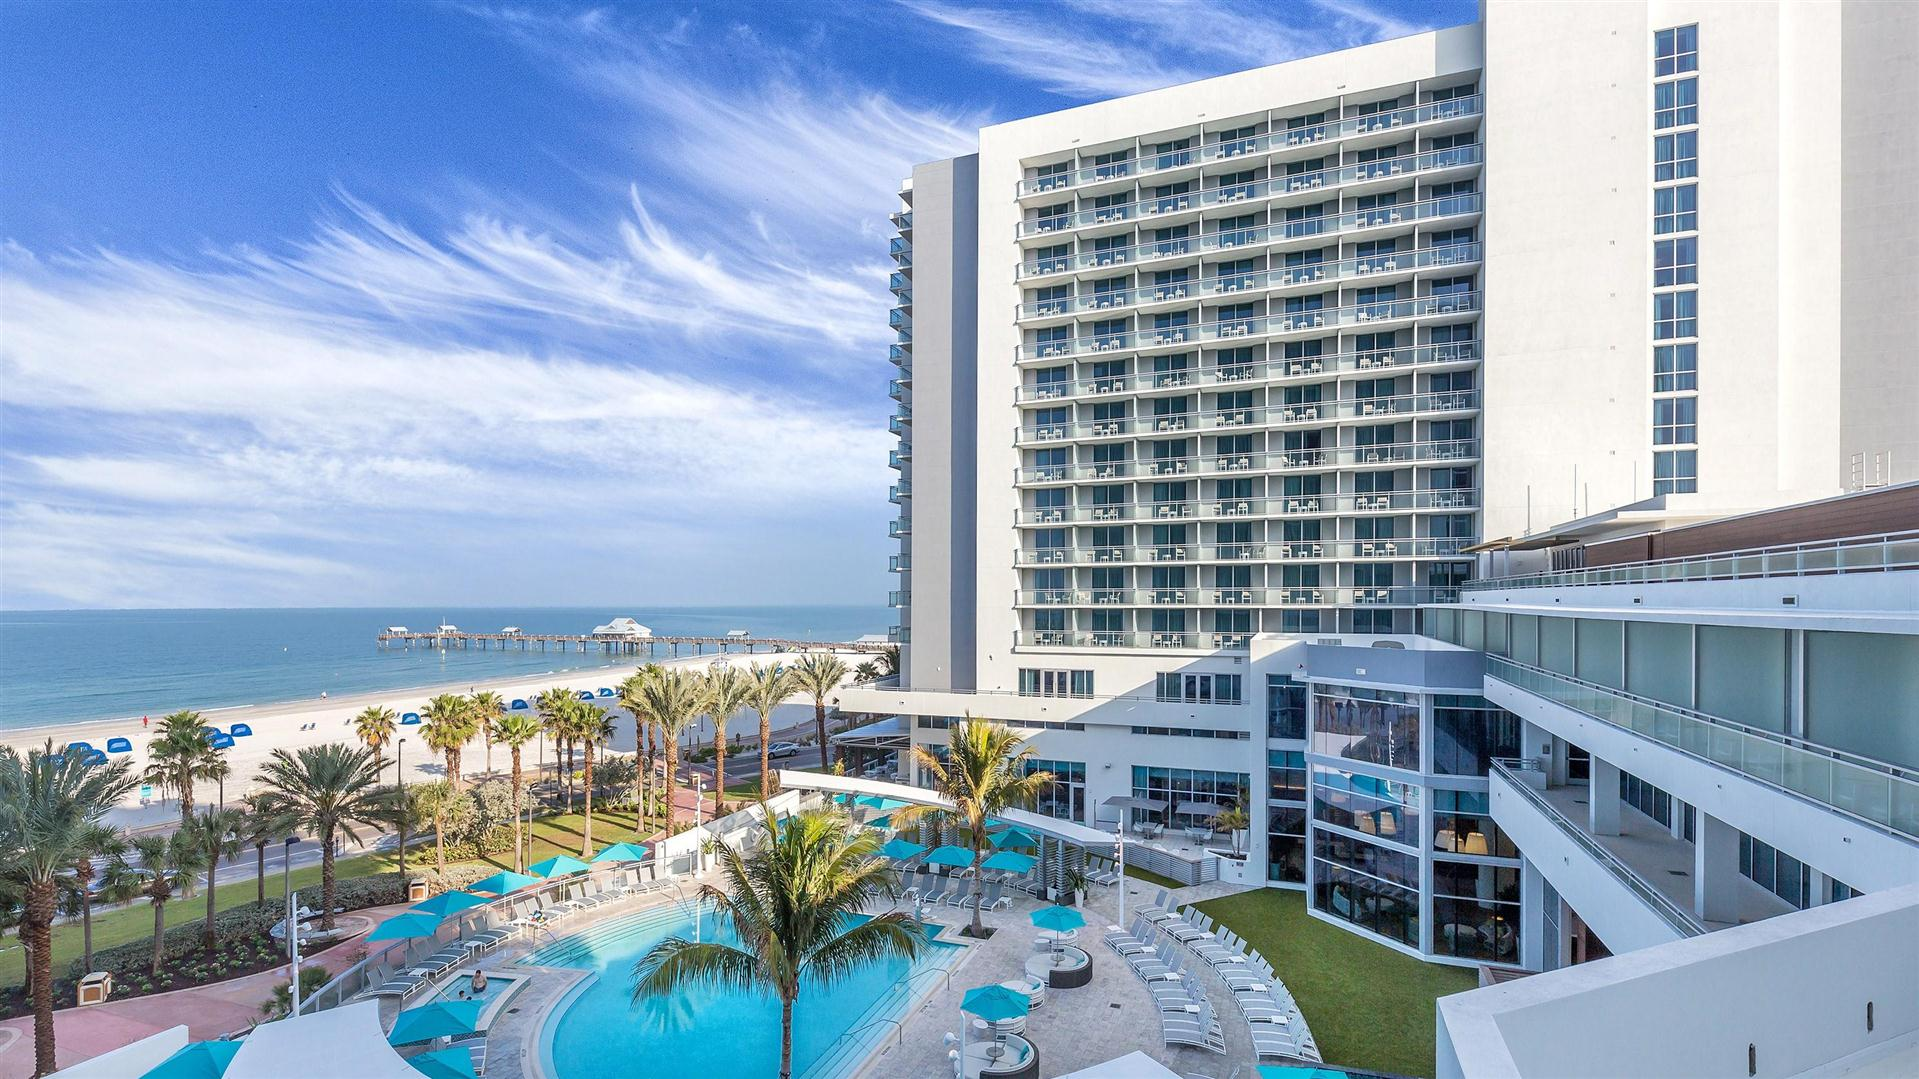 Meetings And Events At Wyndham Grand Clearwater Beach Clearwater